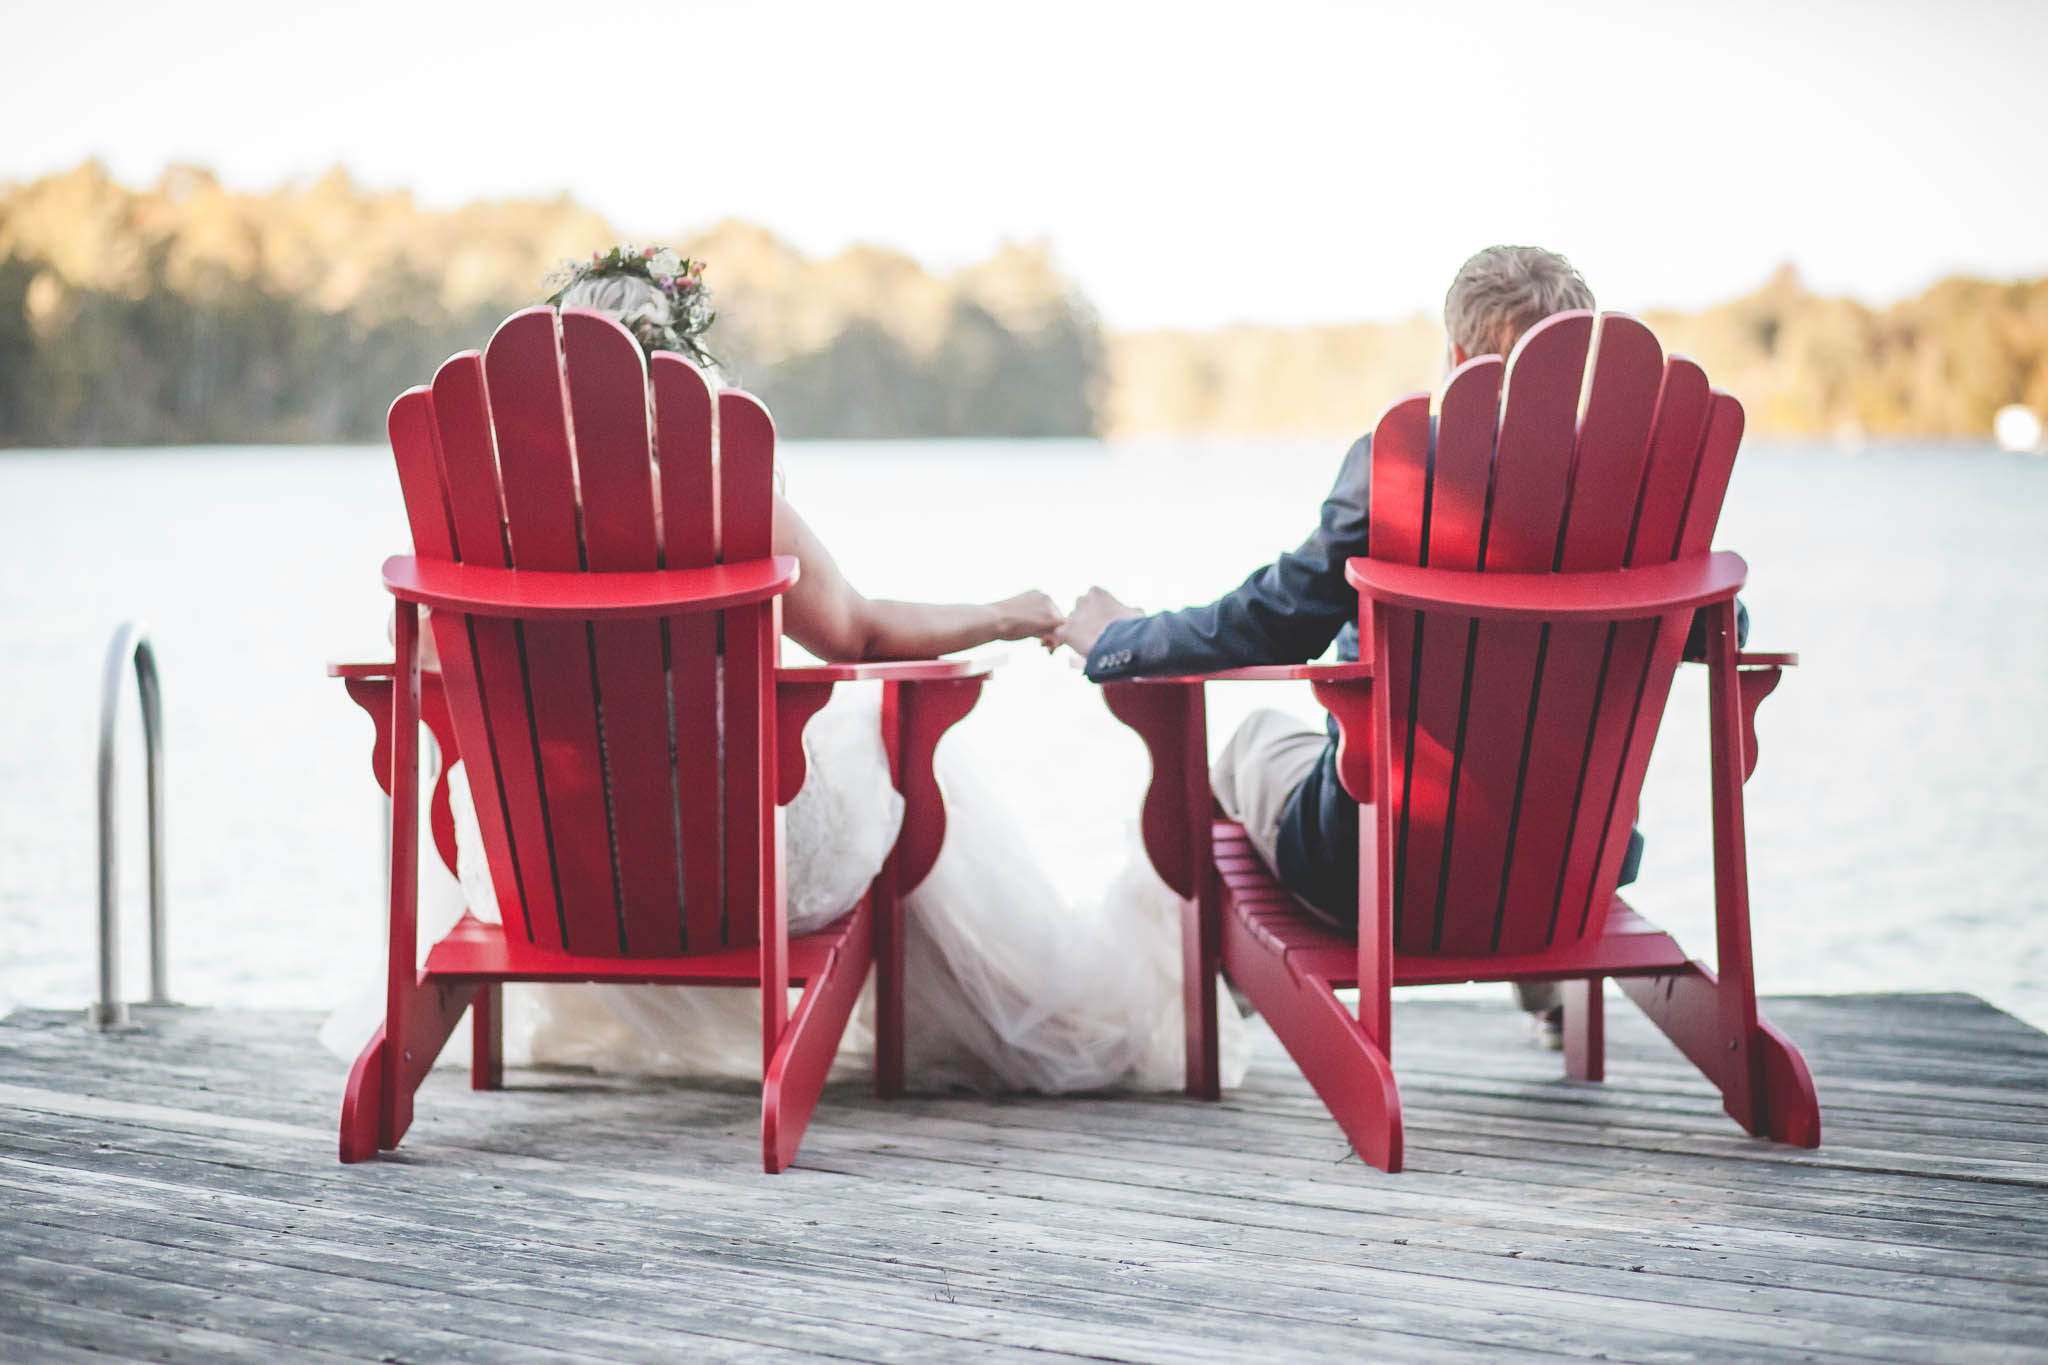 Amy D Photography- Barrie Wedding Photography- Muskoka Wedding Photographer- Best Wedding Photographer- Bride and Groom Pose- Wedding Poses- Wedding Photographer- Waterfront Wedding (67 of 128).jpg